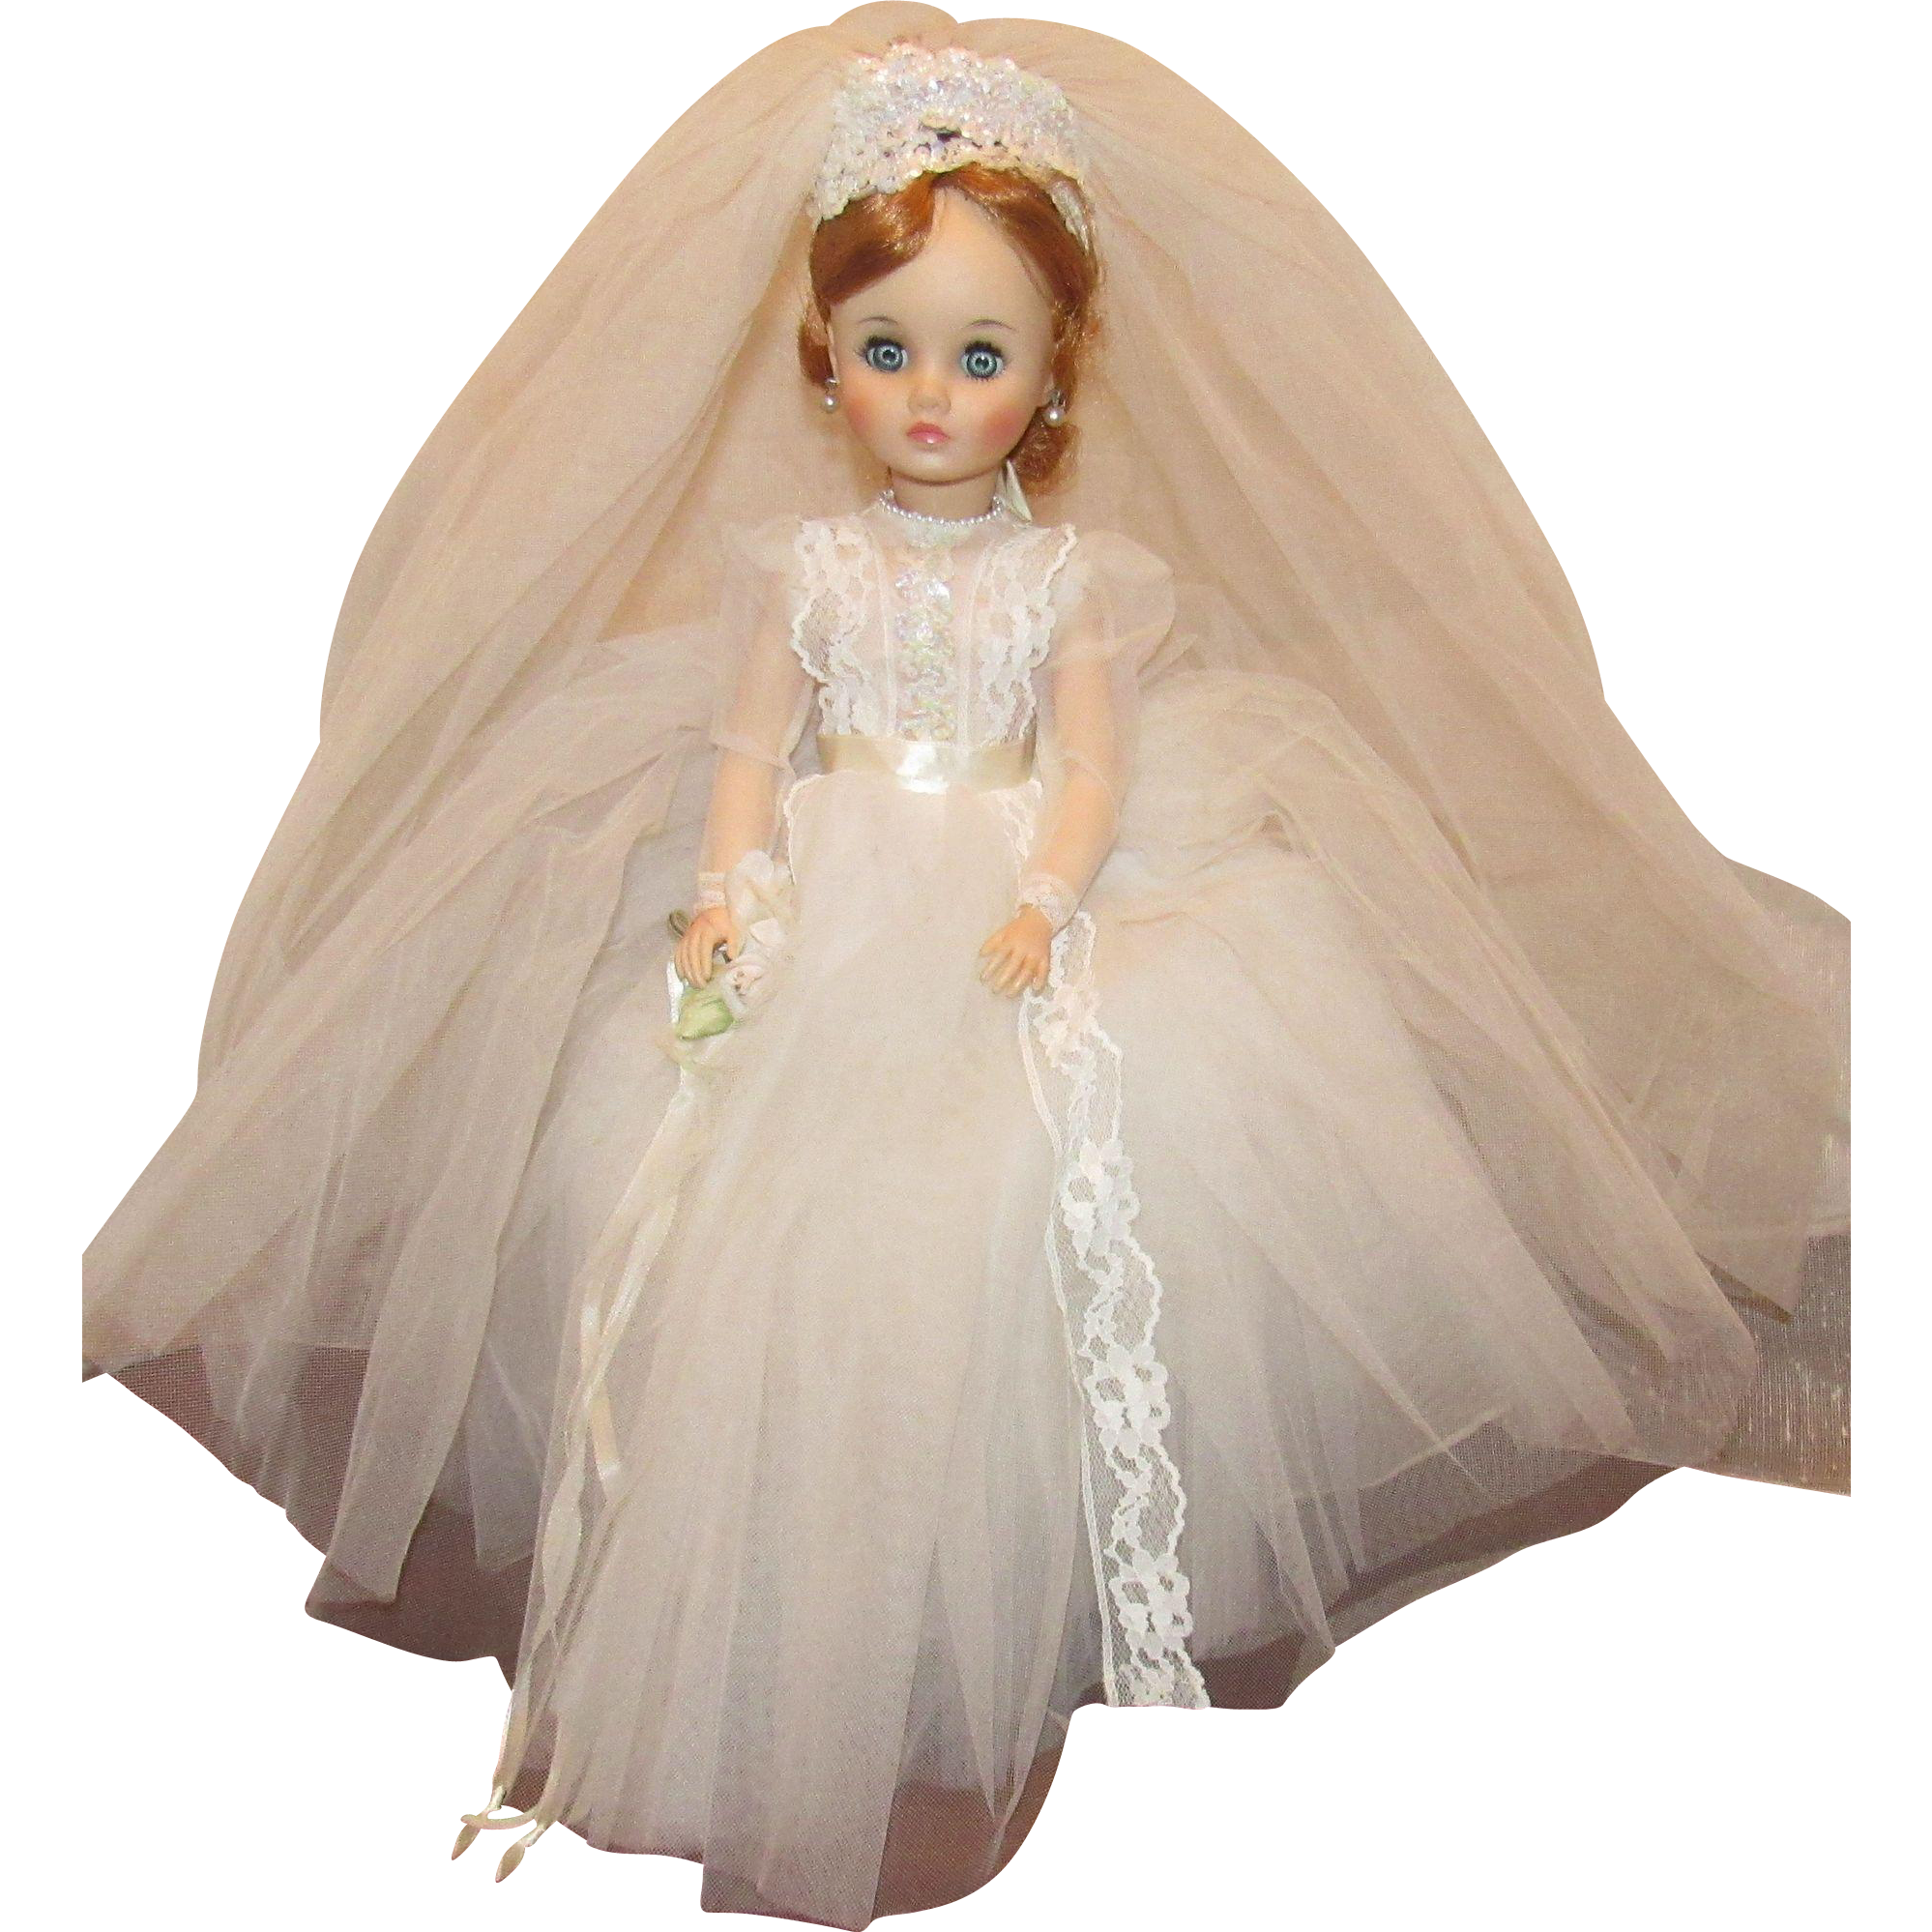 Madame Alexander Stunning Rare Red Head Elise Bride Doll 18 In Tagged Gown All Original #bridedolls